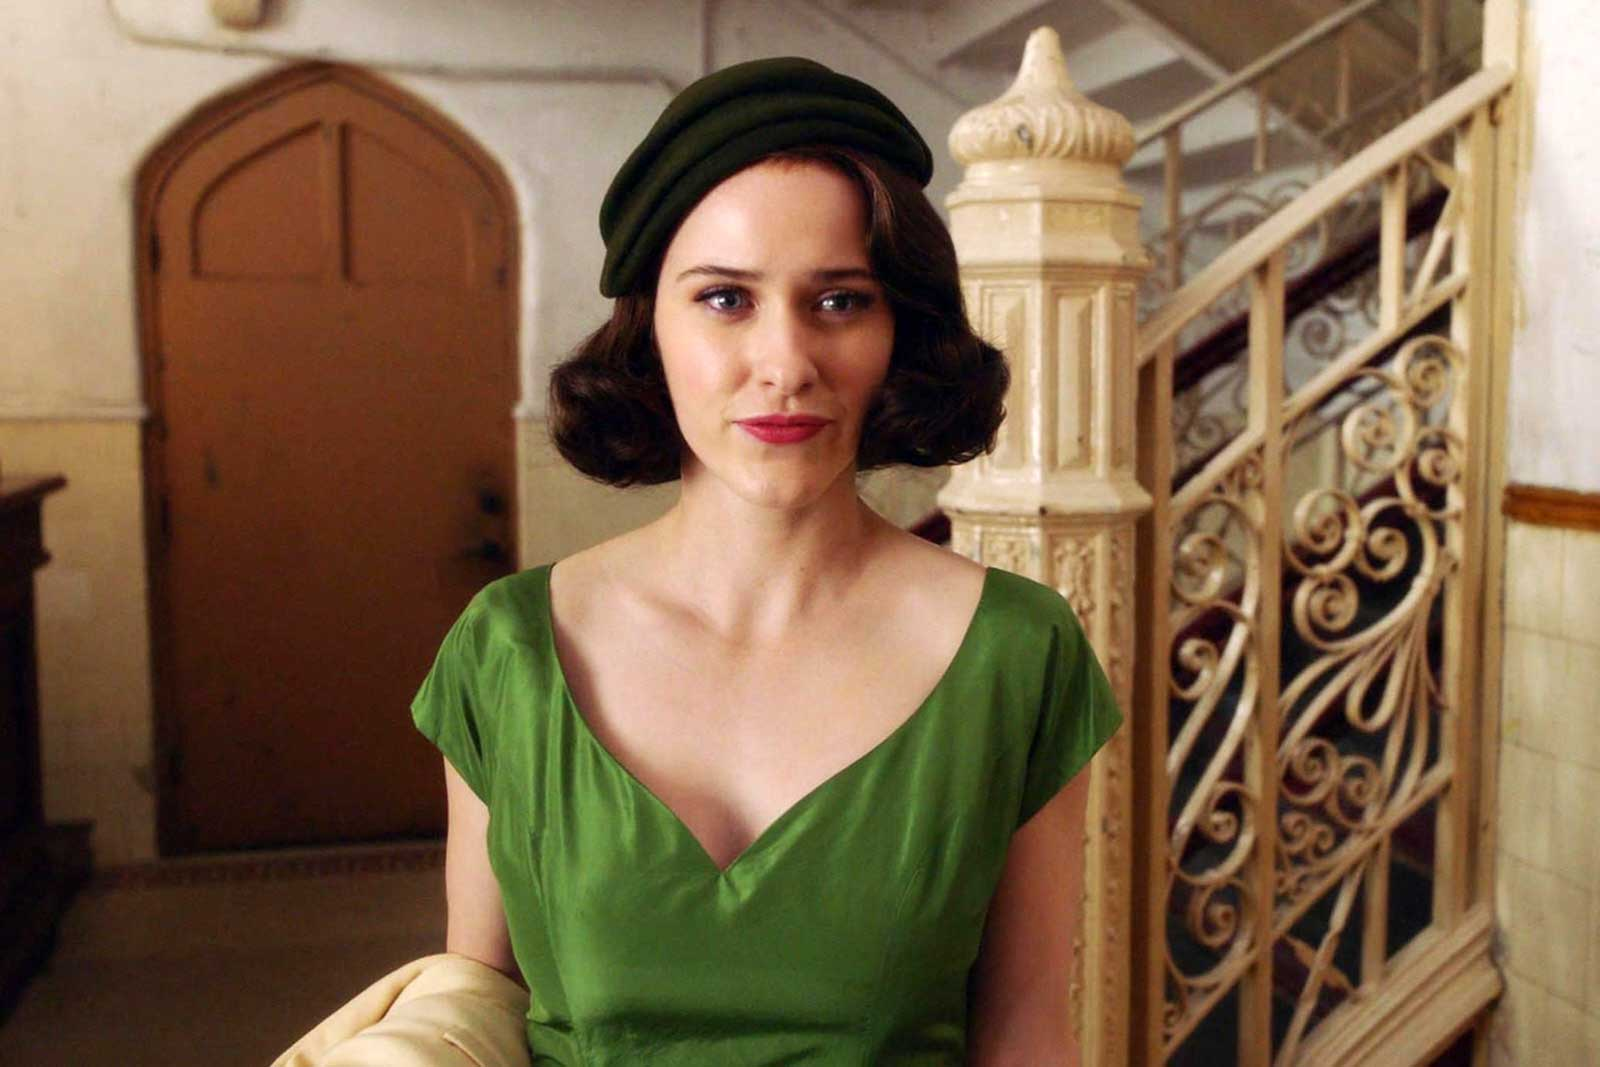 Amazon gives 'Mrs. Maisel' third season just months after premiere